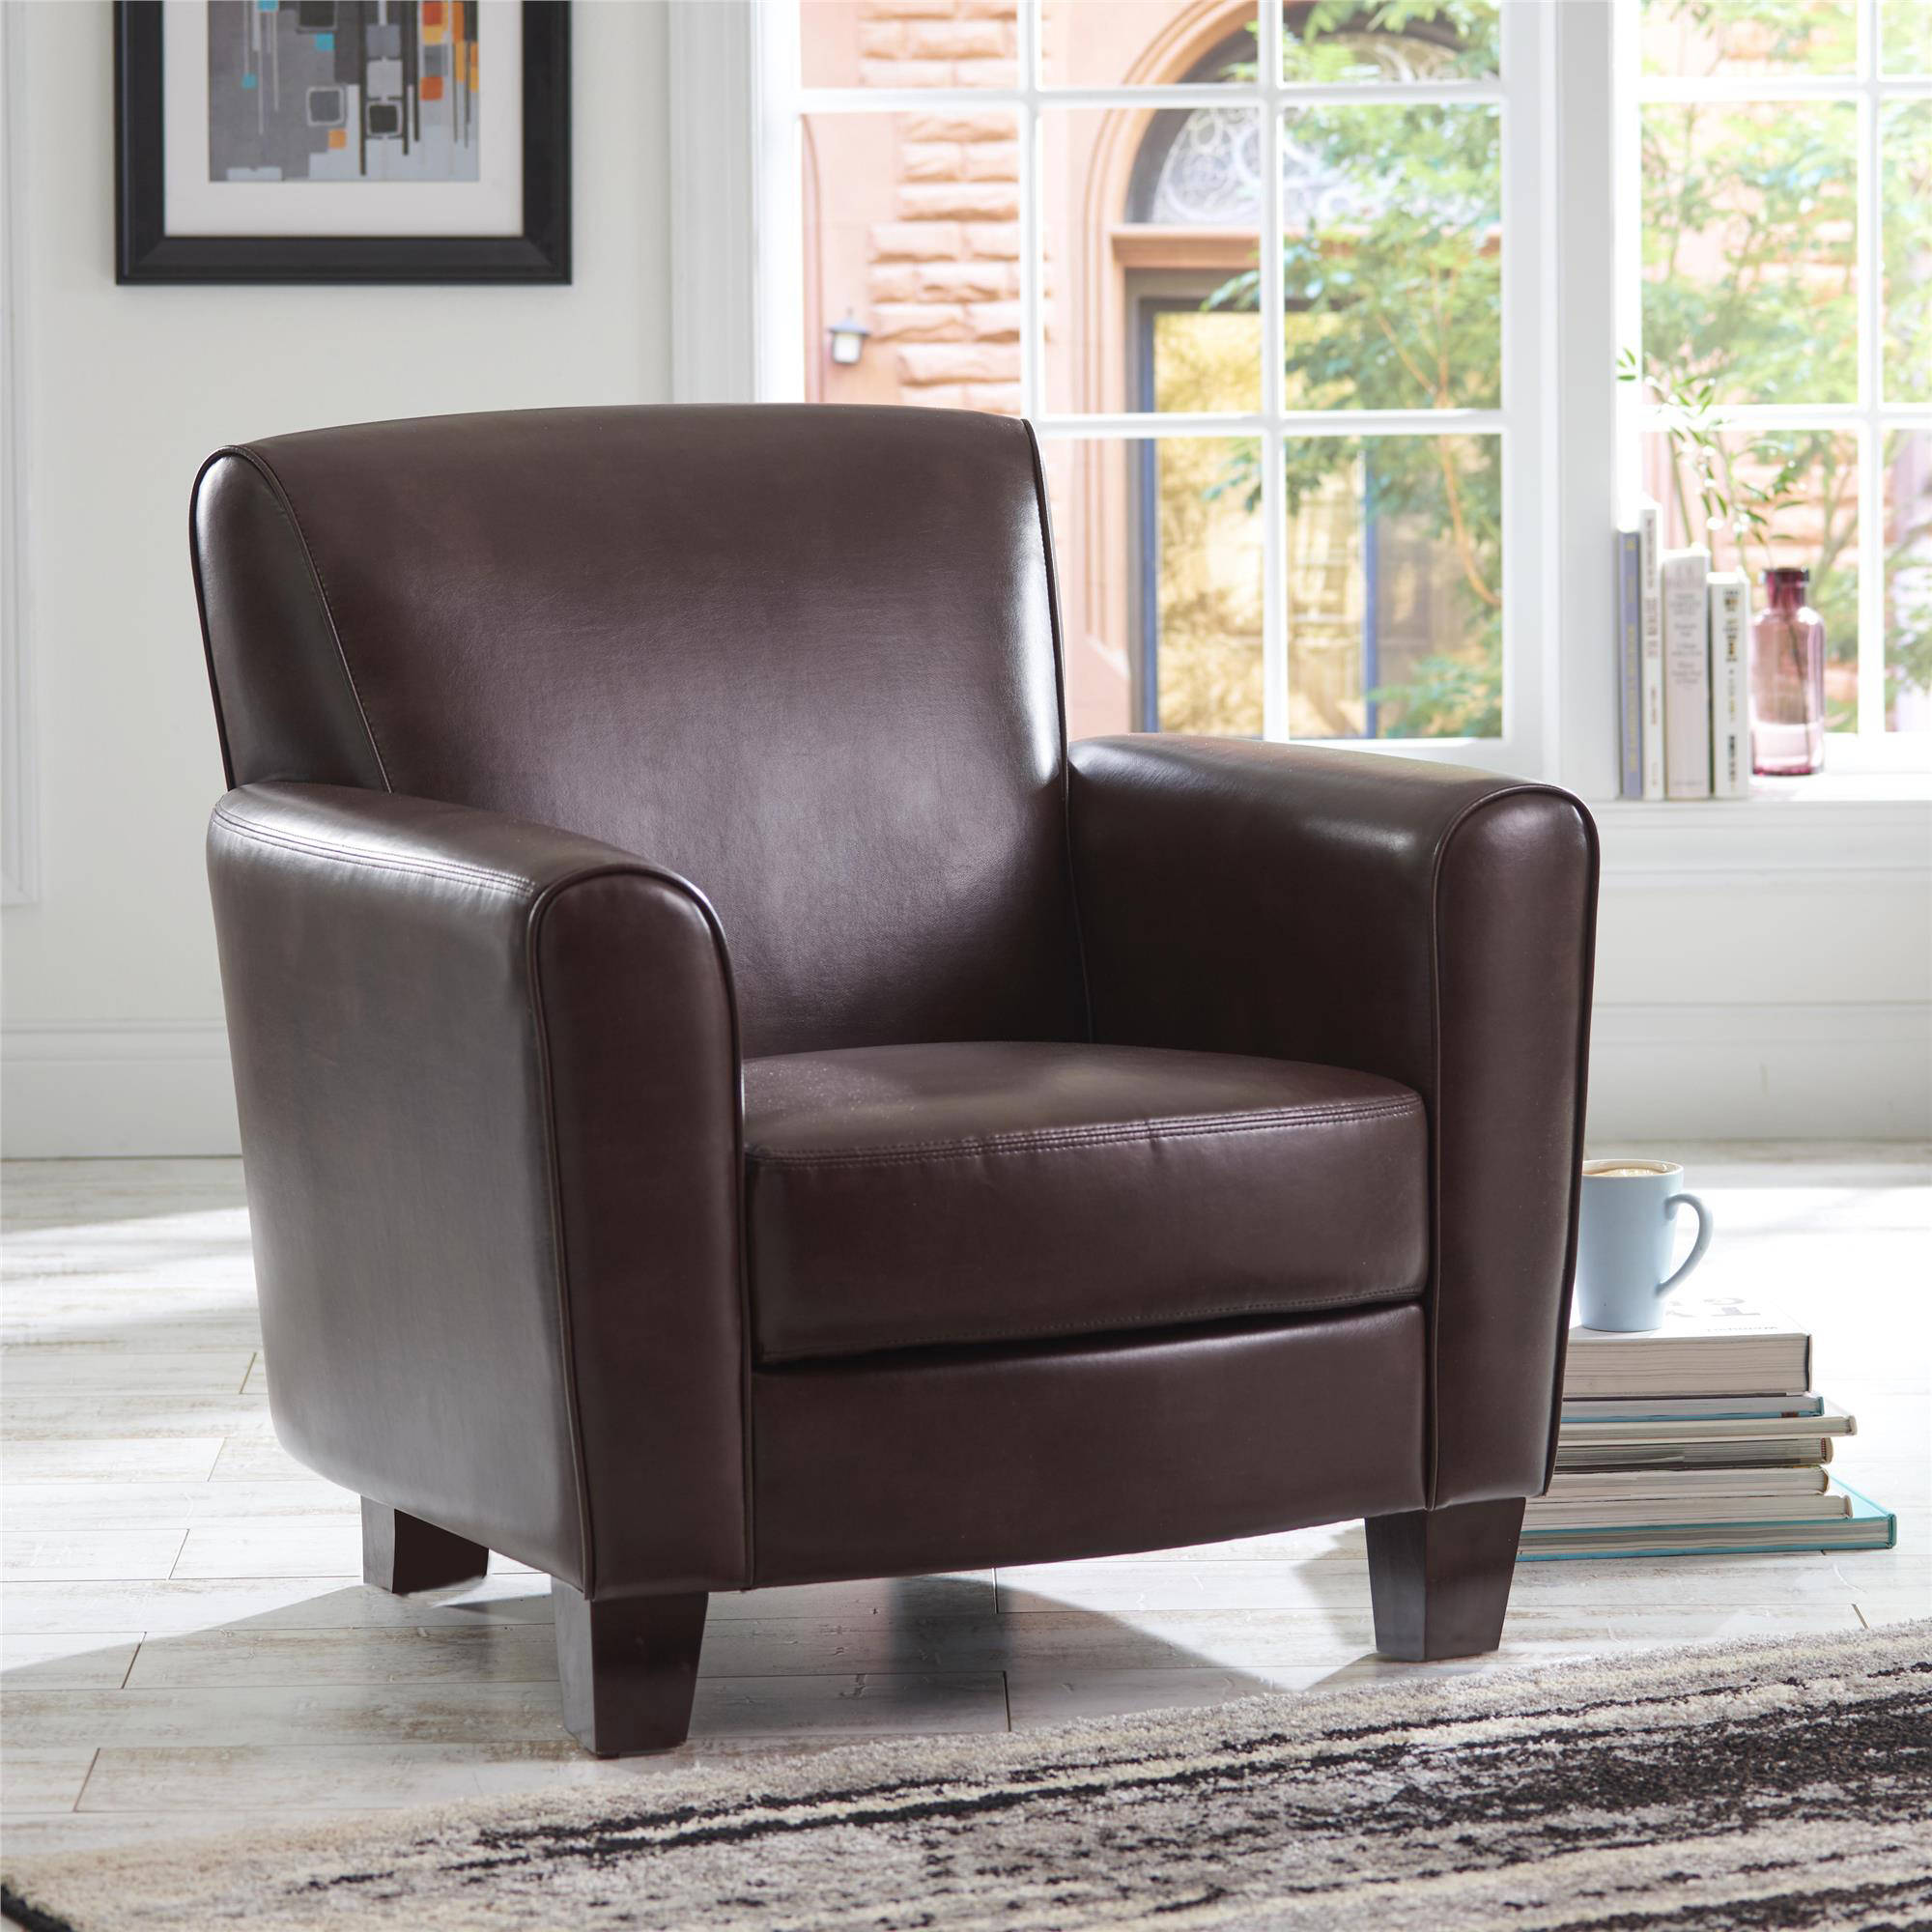 Charmant Better Homes And Gardens Ellis Club Chair, Brown